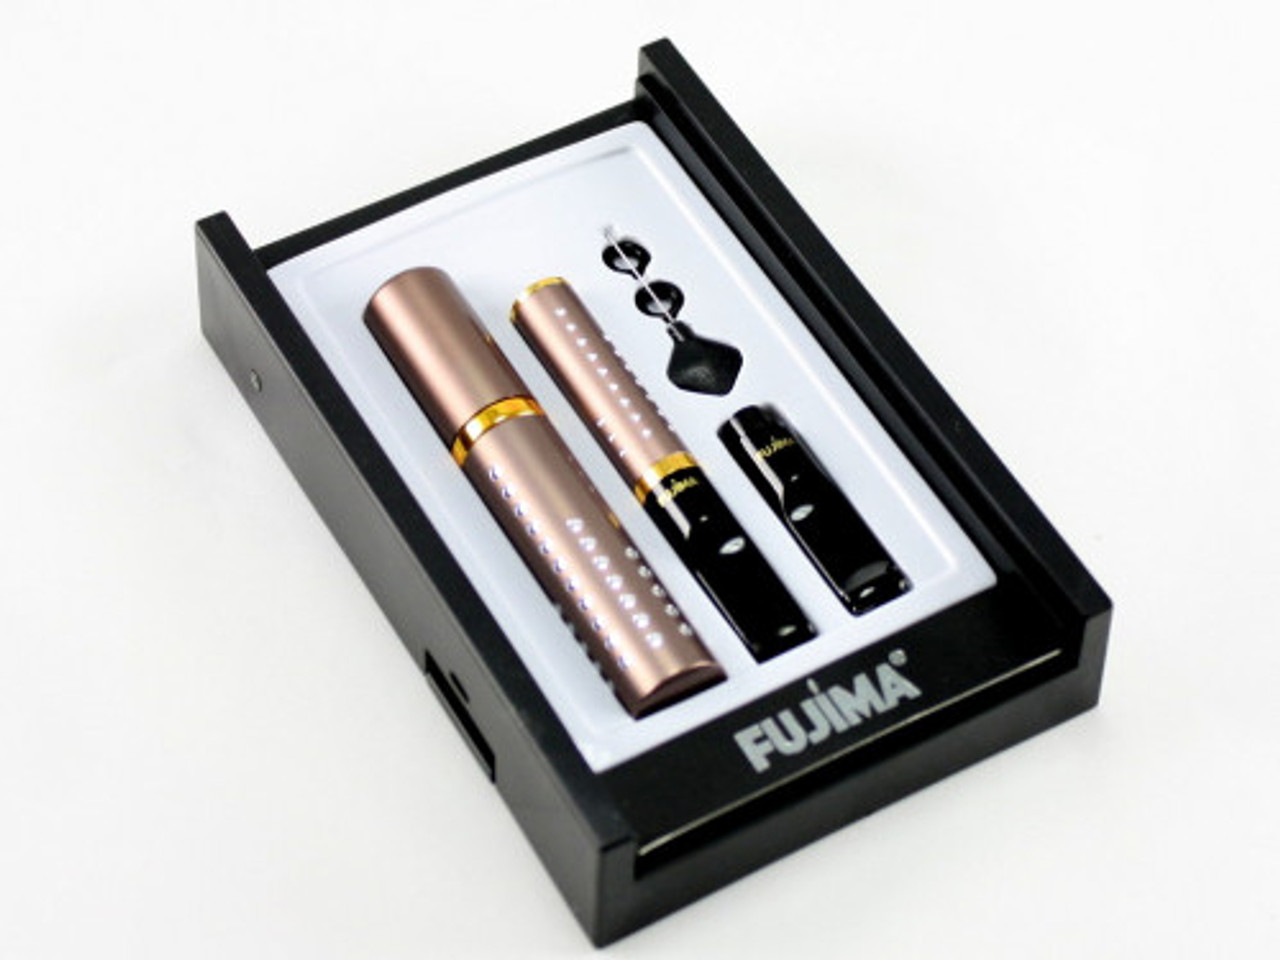 Adonis Super Cigarette Holder with Cleanable Filter and Case